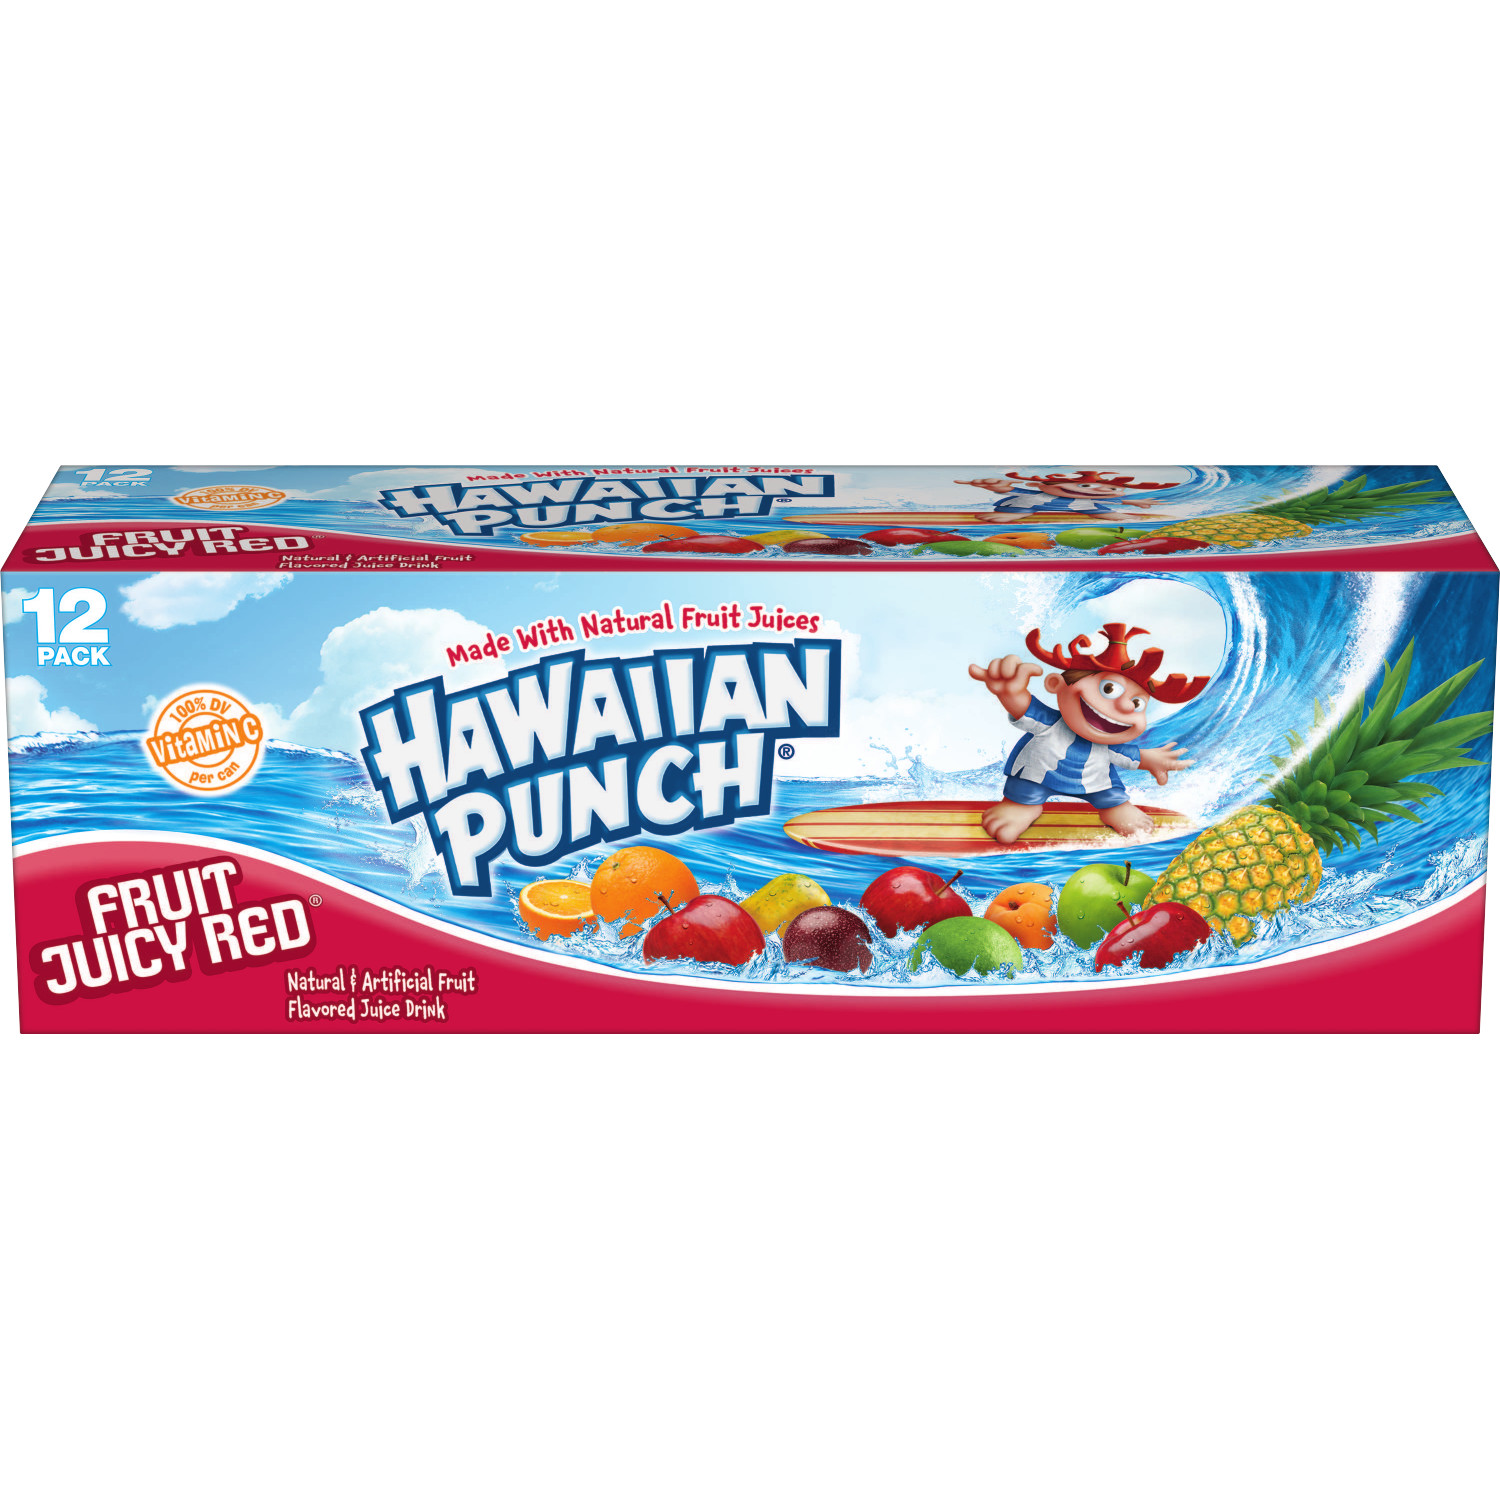 Hawaiian Punch Gluten-Free Fruit Juicy Red Juice Drink, 12 Fl. Oz., 12 Count